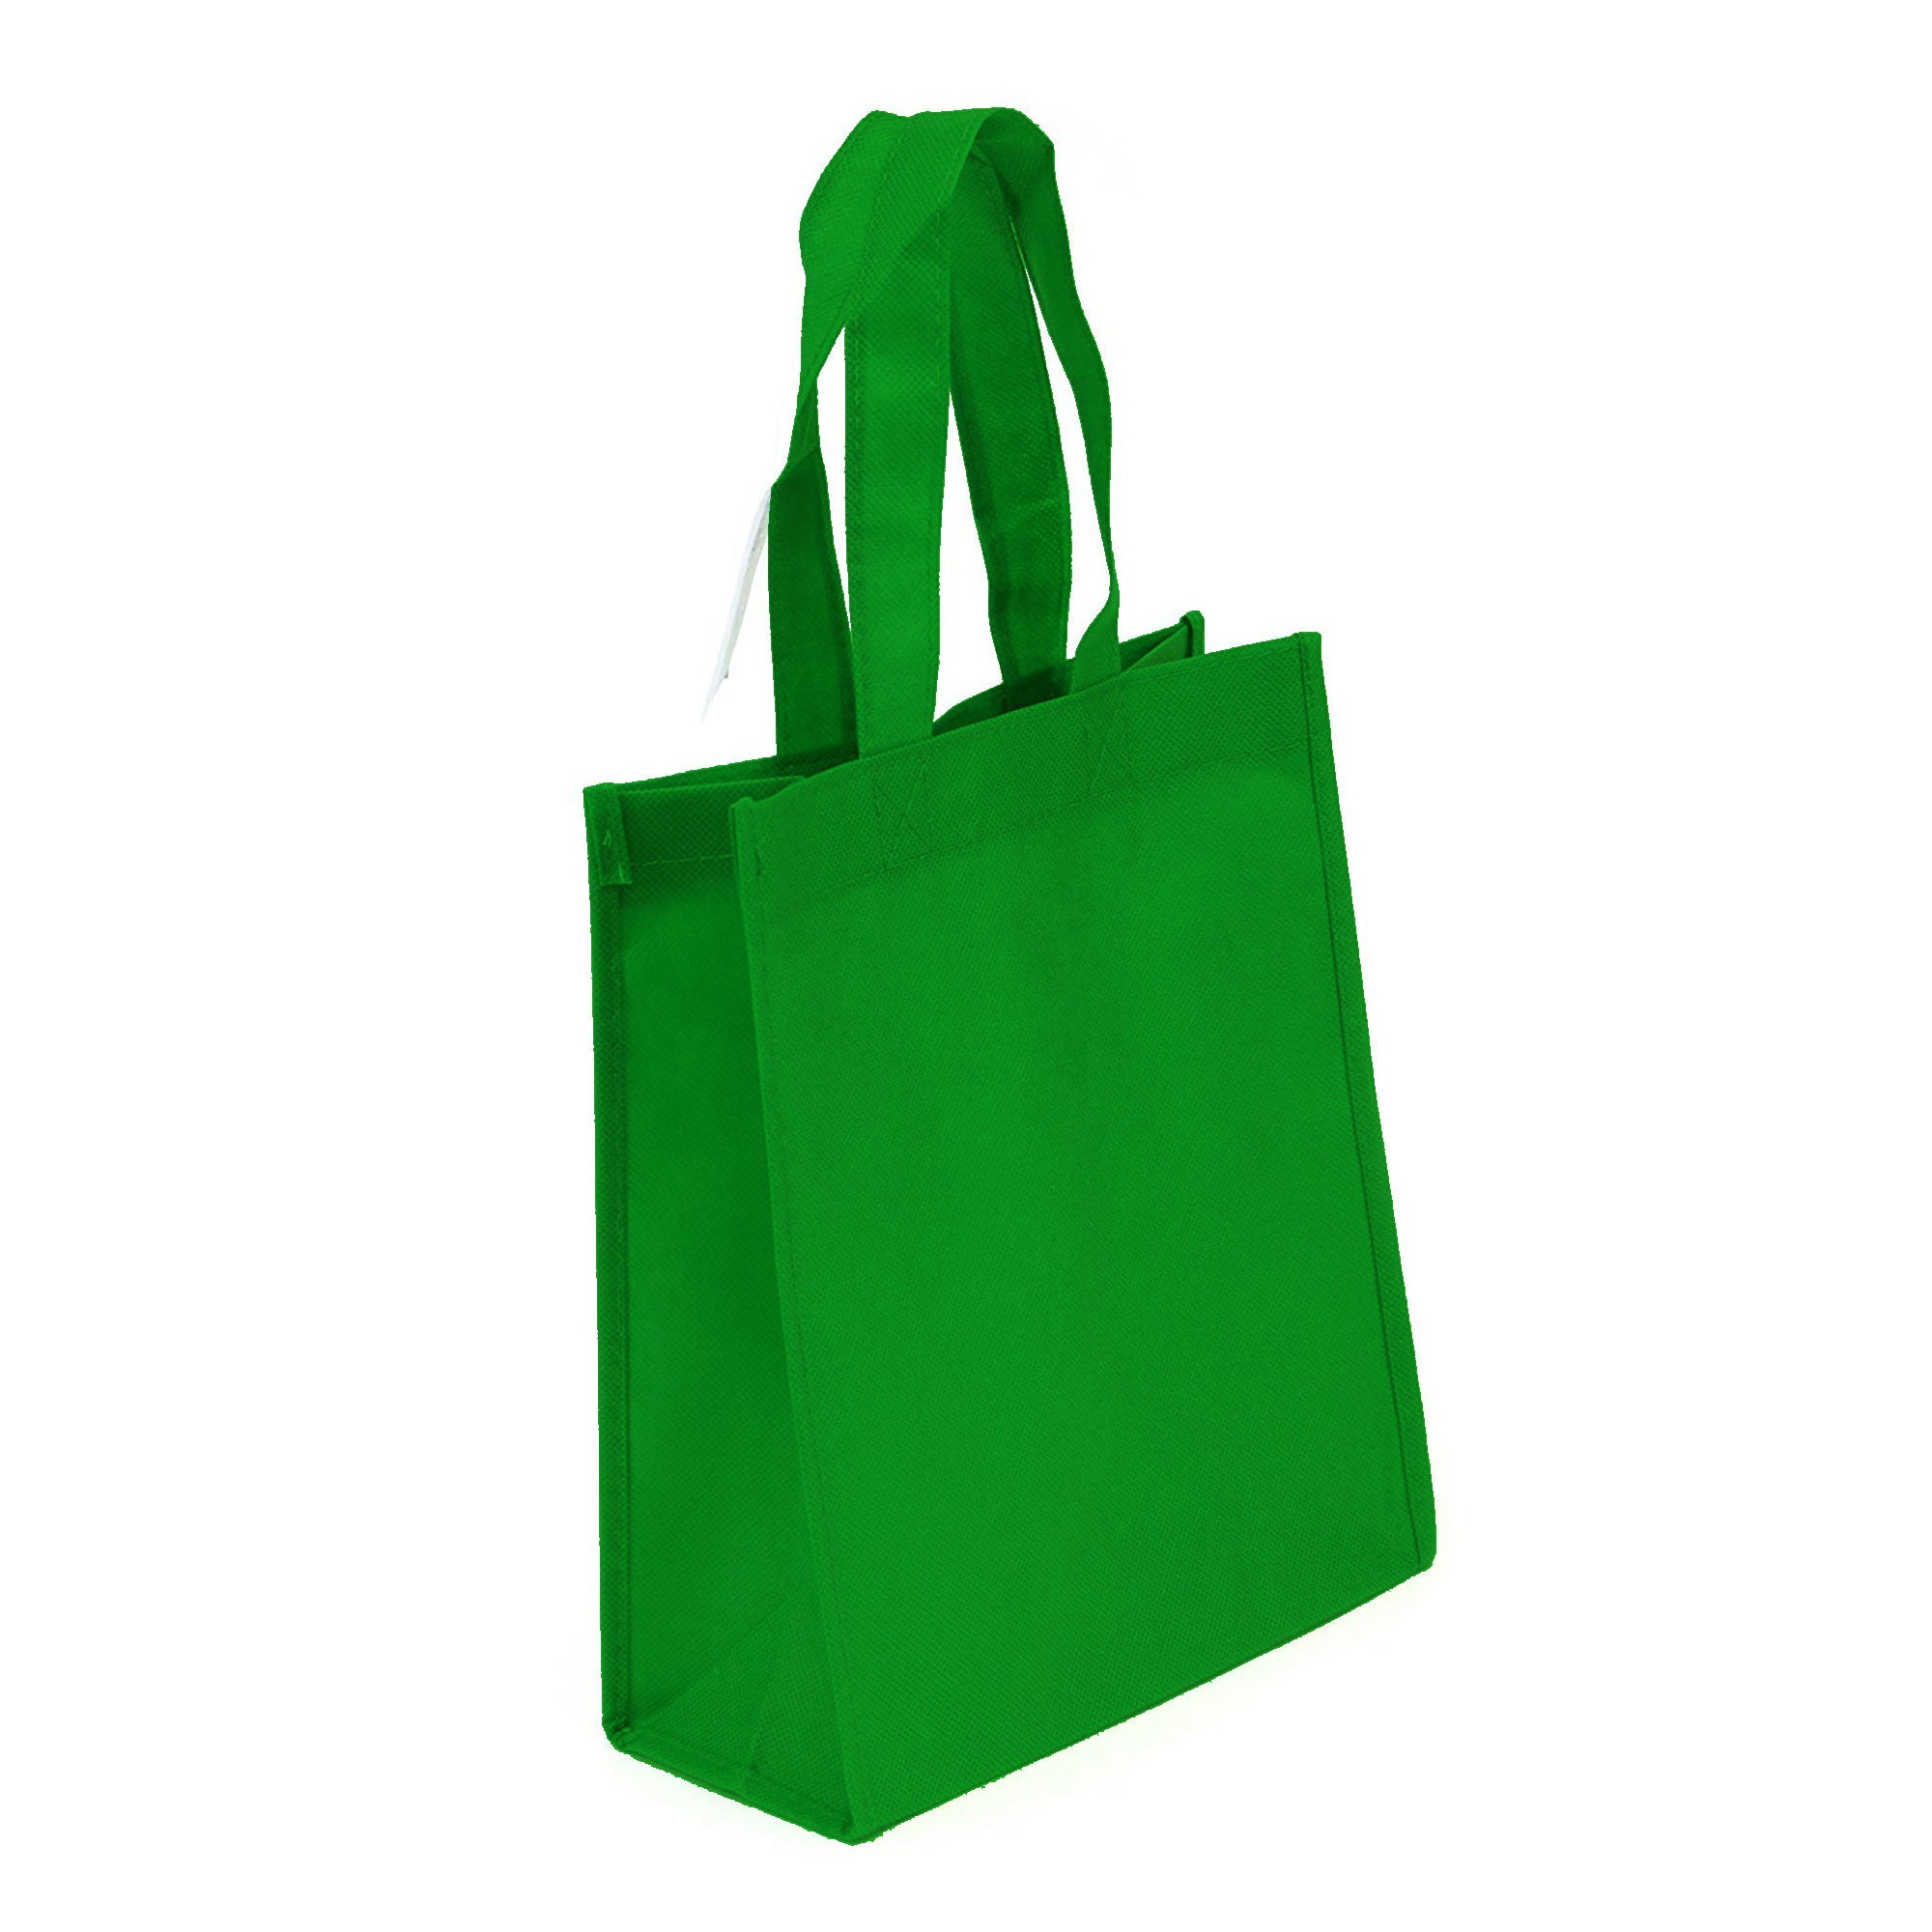 Non-Woven Bag, reusable grocery bag, fabric bags, reusable non-woven tote bags, lime green grocery bags, school bags, lunch bags, small lunch bags